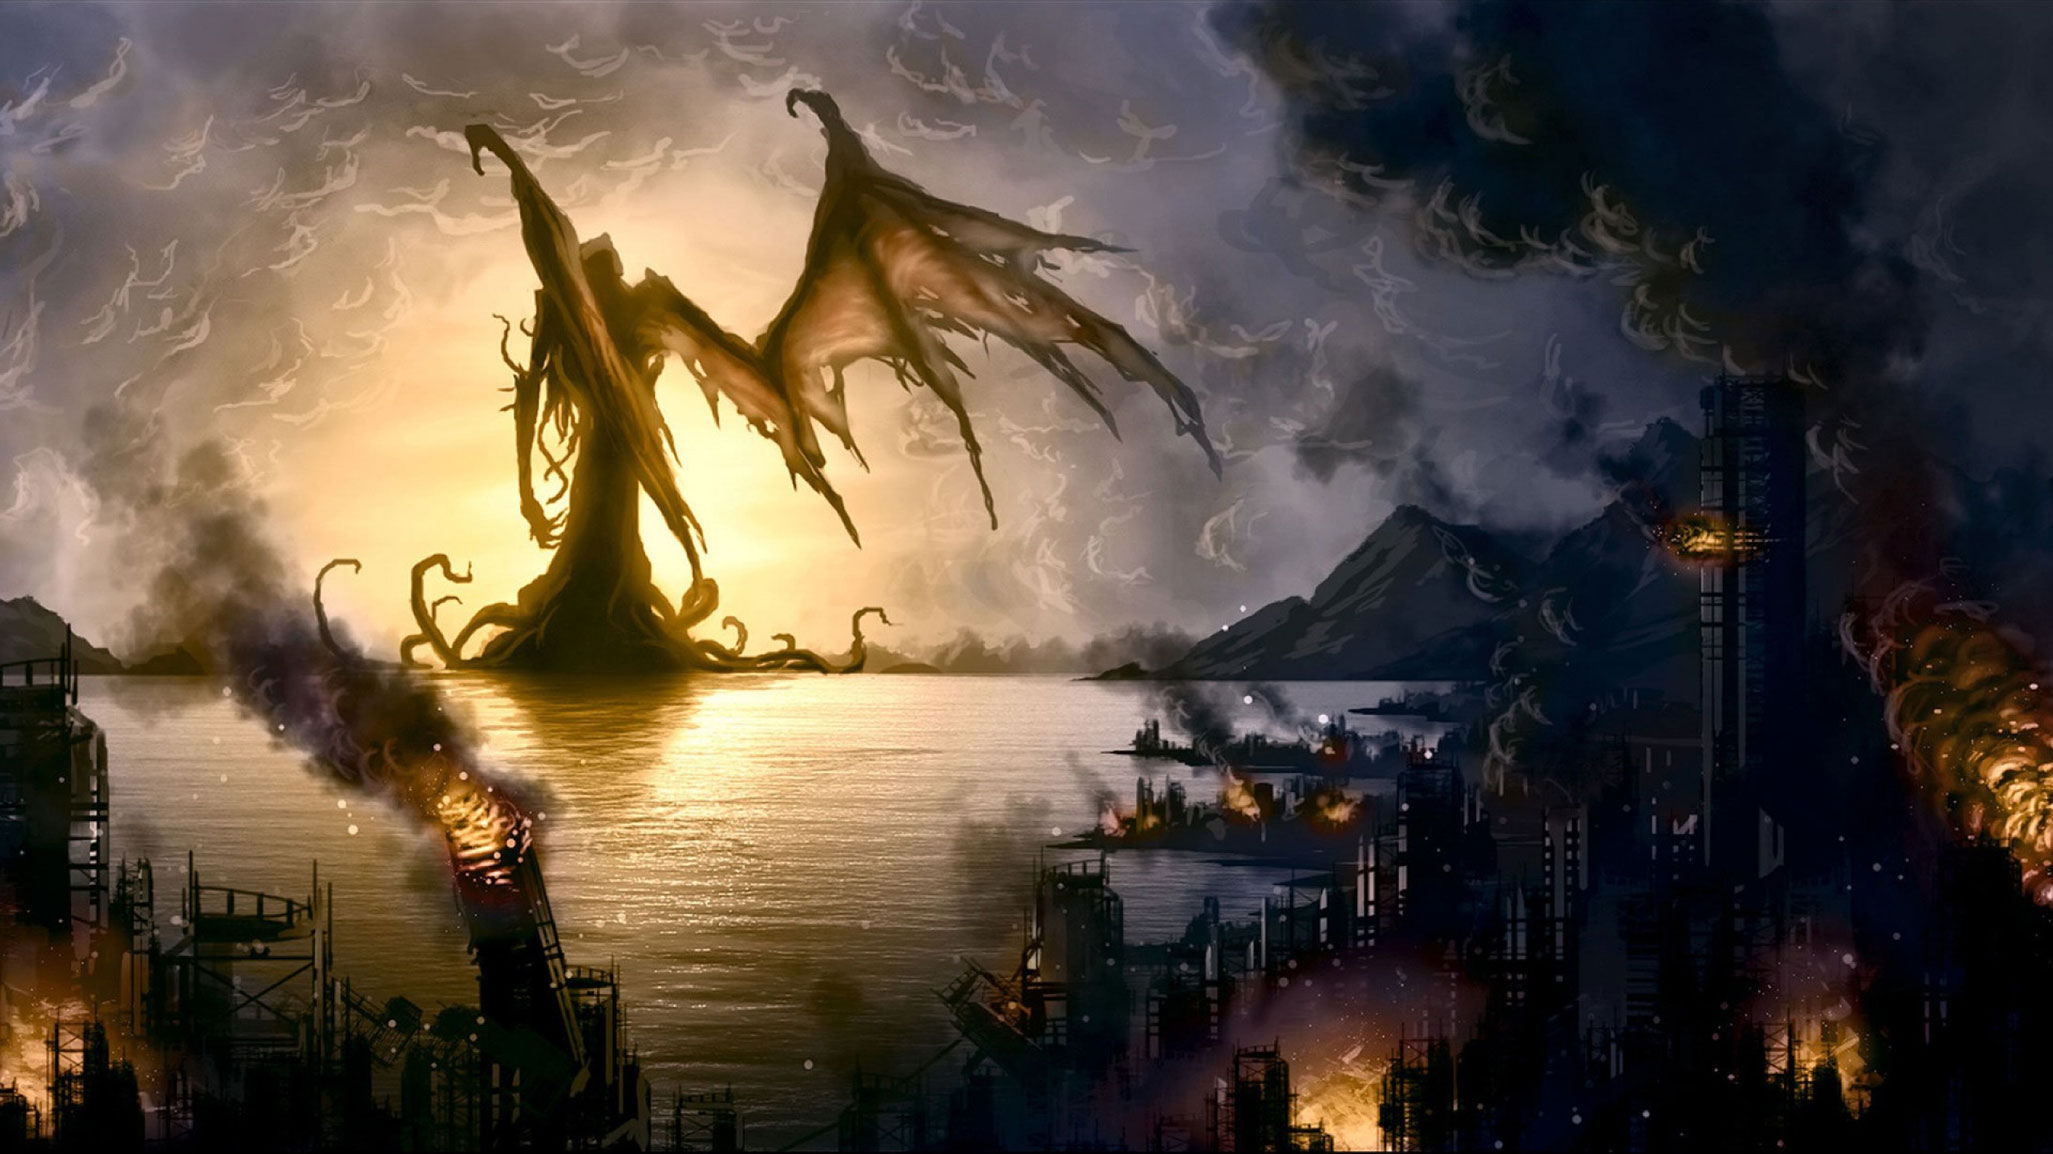 Cthulhu departs burning city by unknown artist image